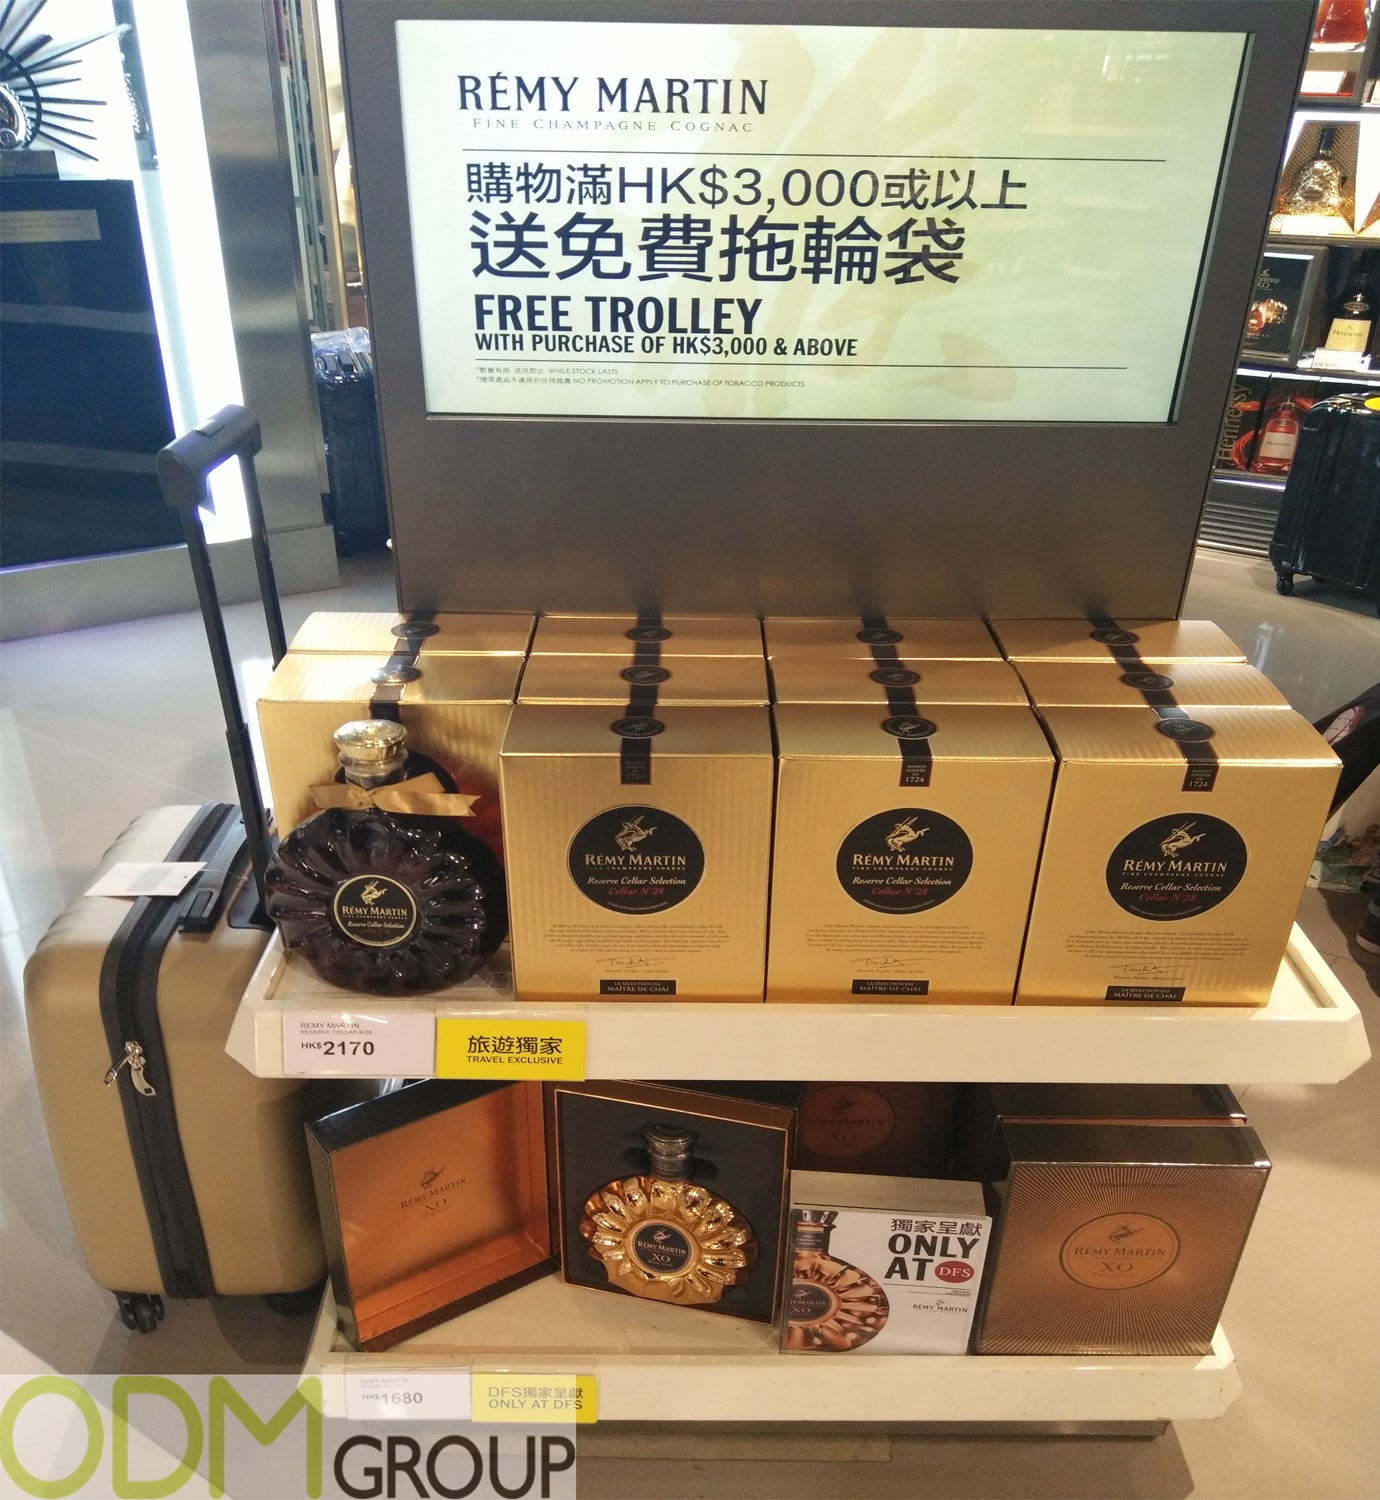 Premium Marketing by Remy Martin